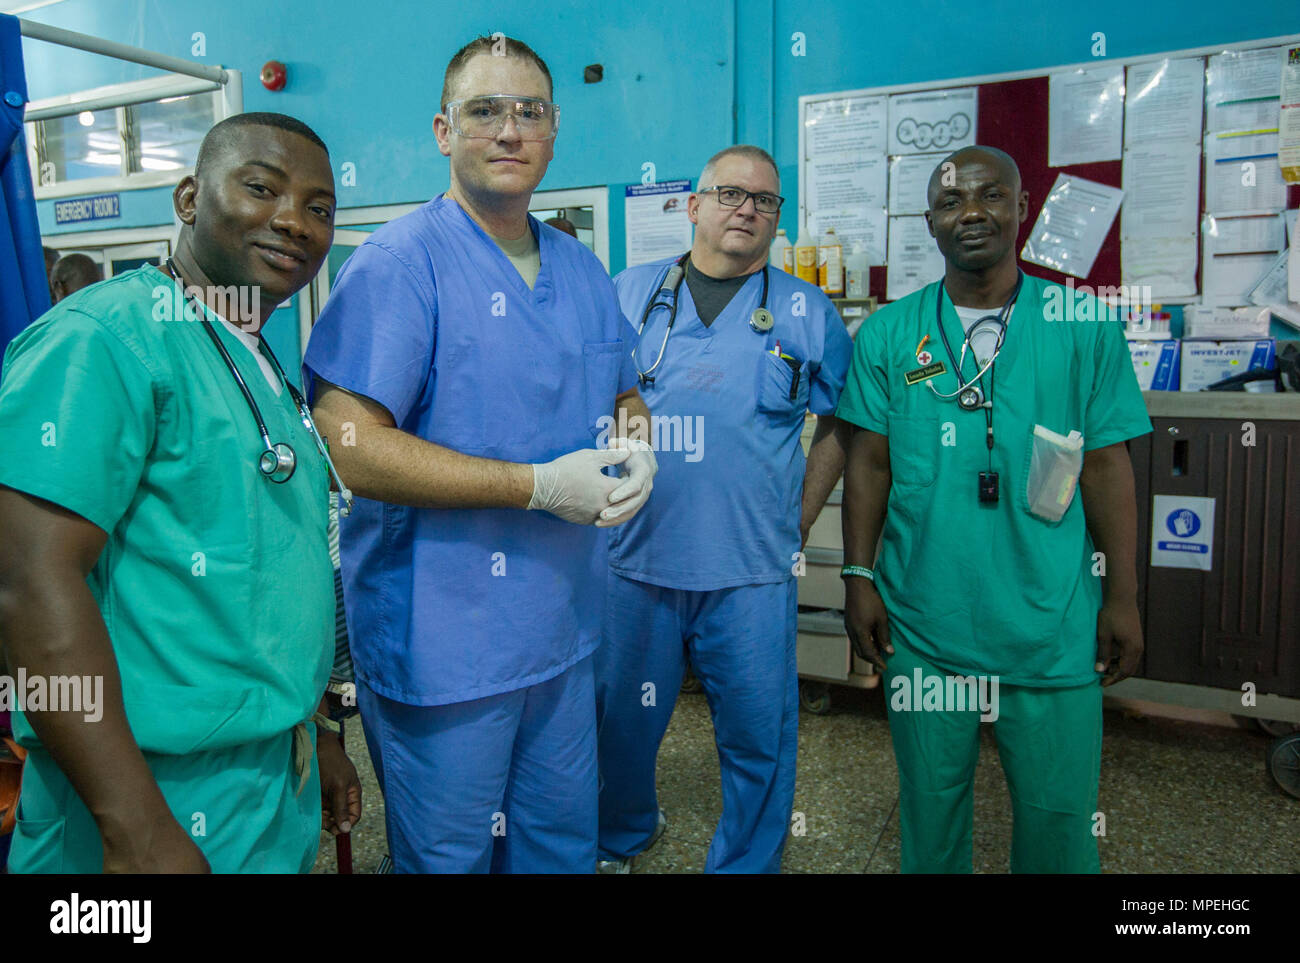 US And Ghanaian Medical Professionals Pose For A Photo In The Emergency Room During Readiness Training Exercise 17 2 At 37th Military Hospital